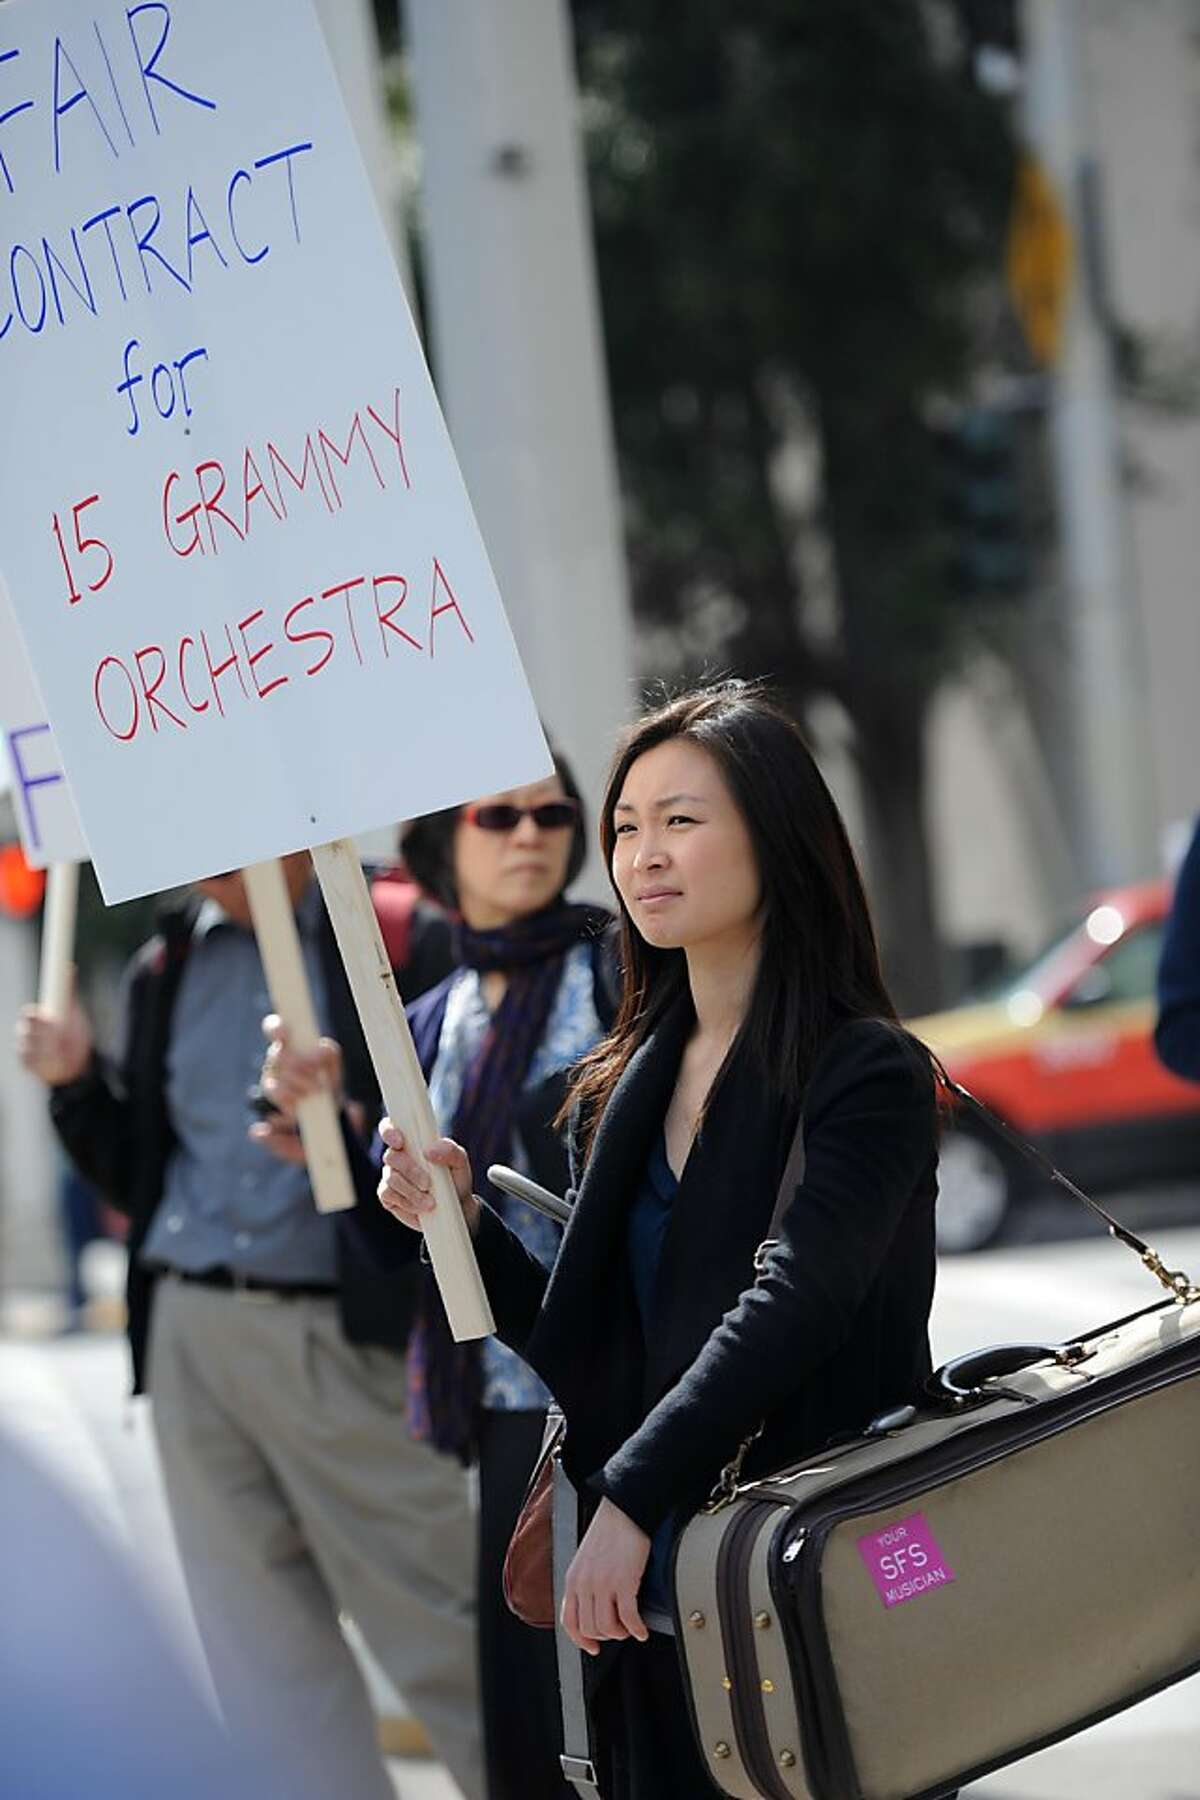 Insun Jang a violin player with the symphony strikes outside of Davies Symphony Hall in San Francisco on Wednesday, March 13, 2013.